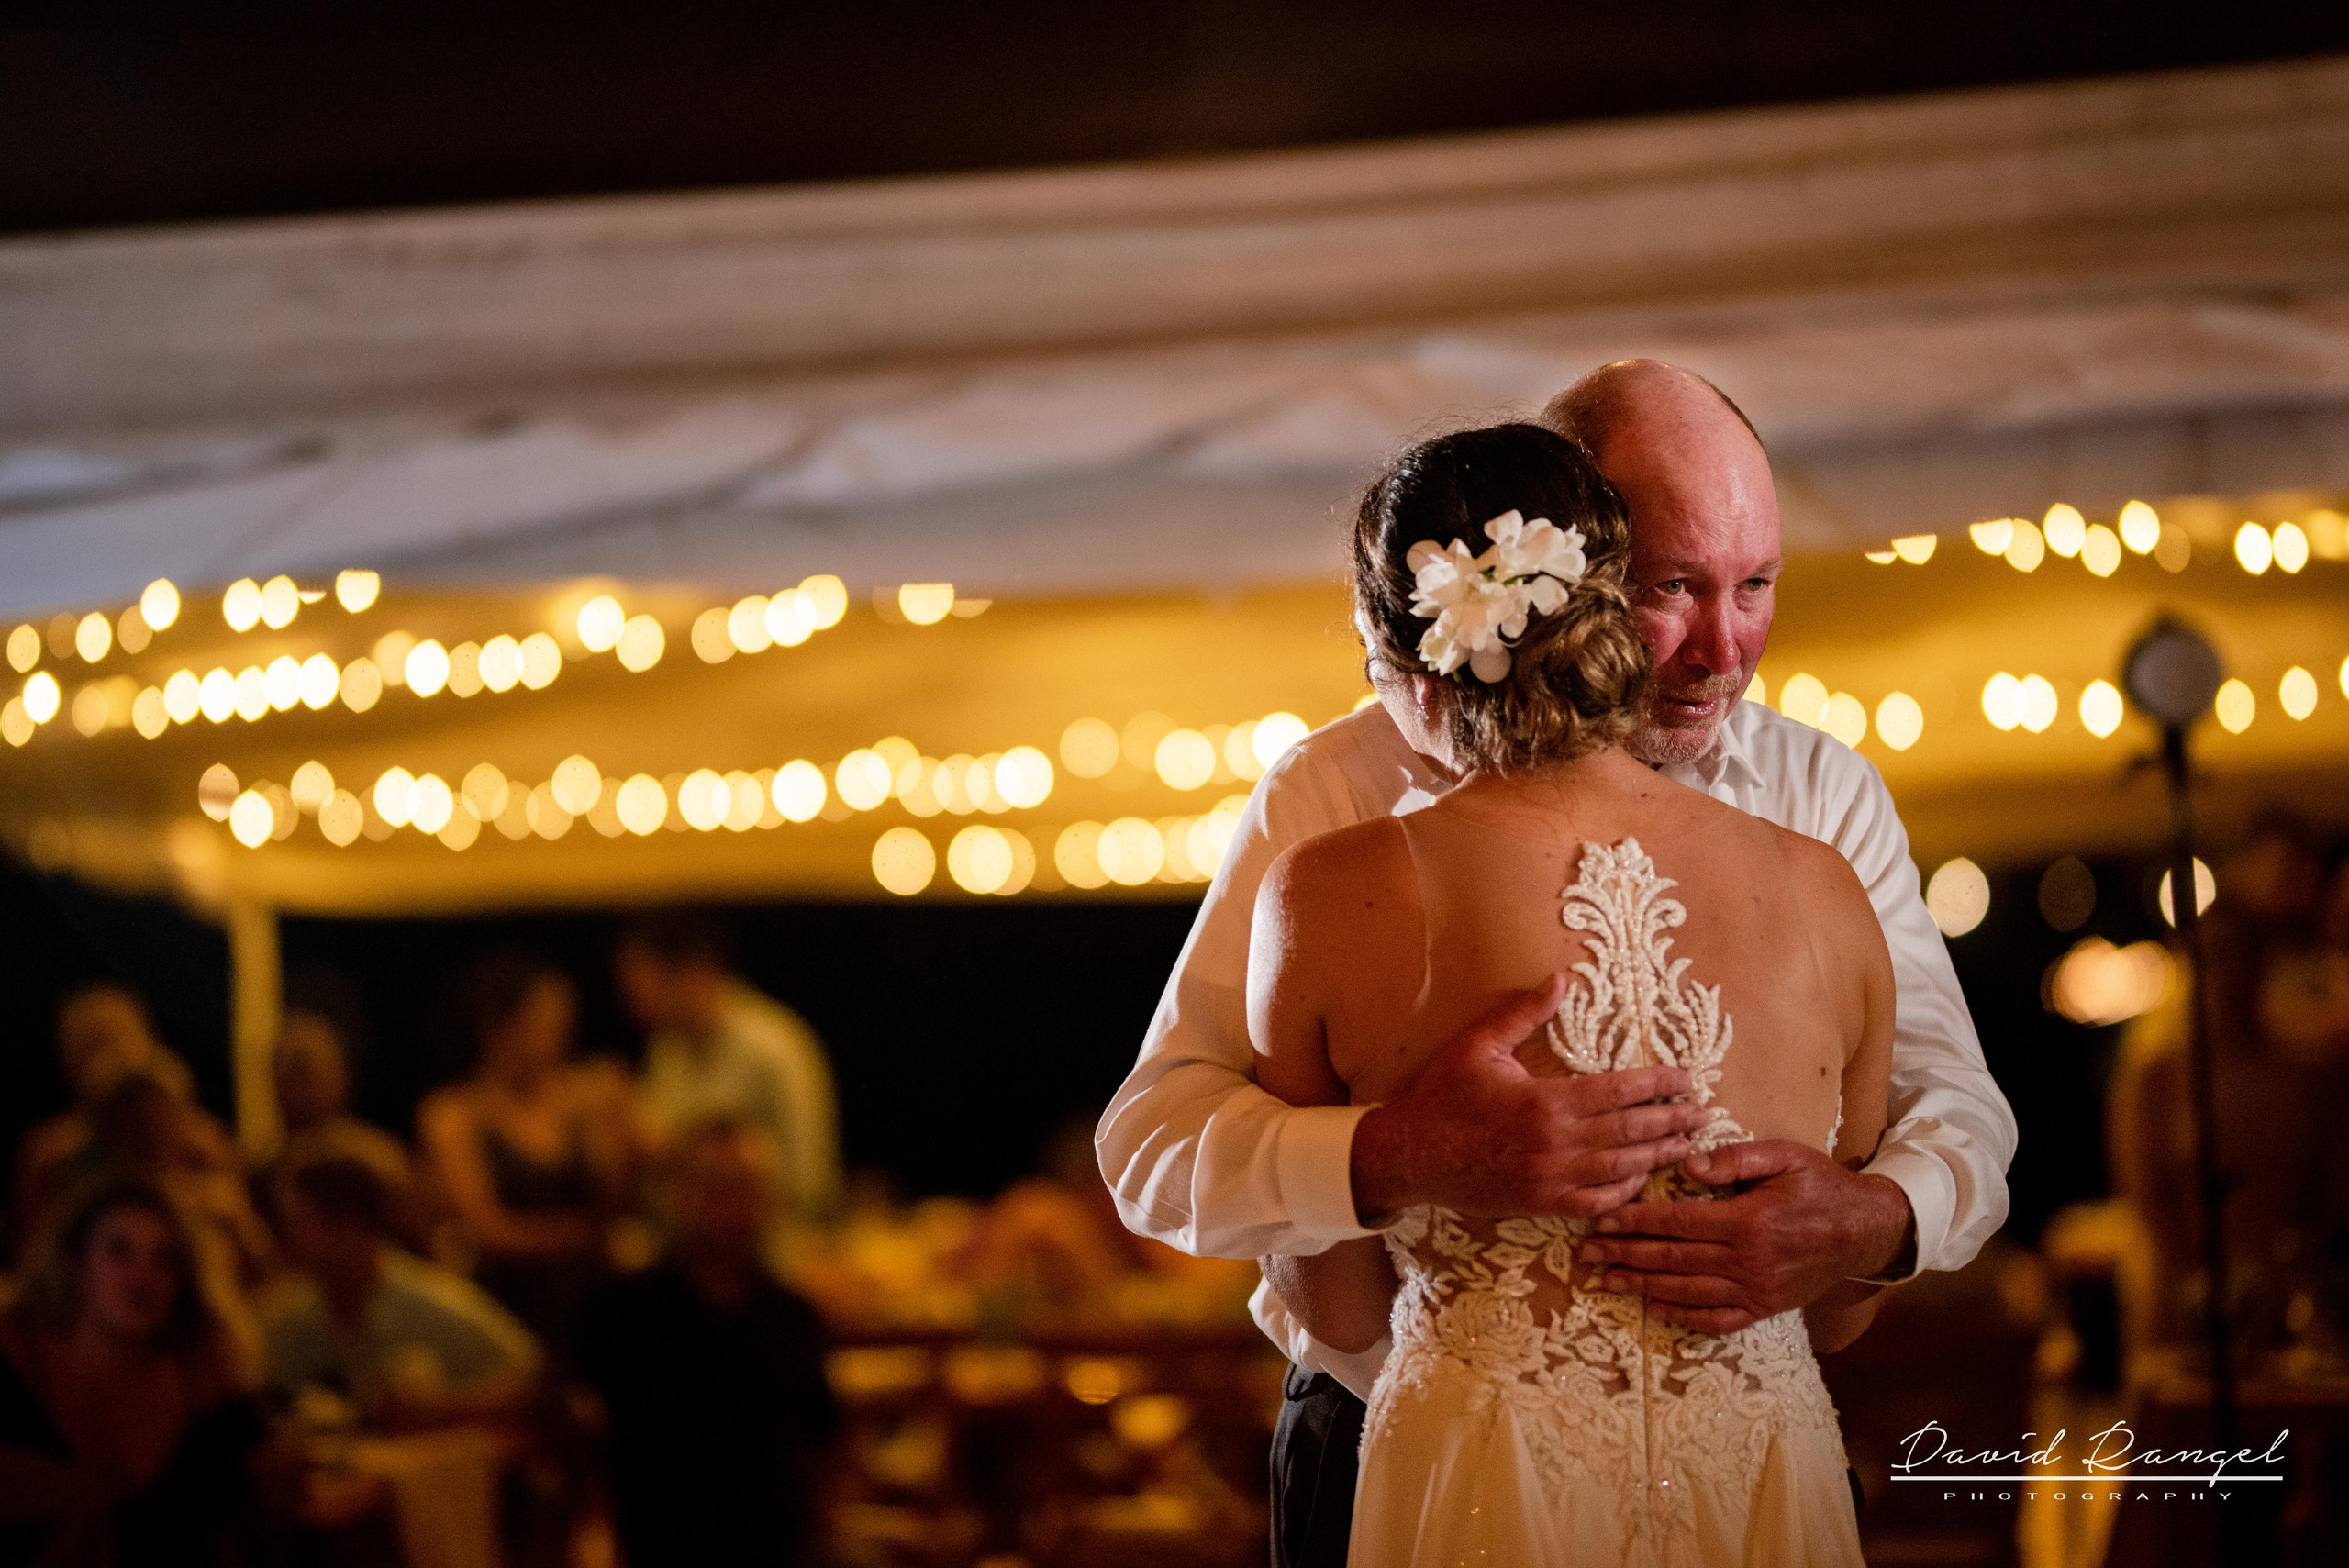 Beach+photo+session+couple+love+hugh+bride+groom+first+dance+father